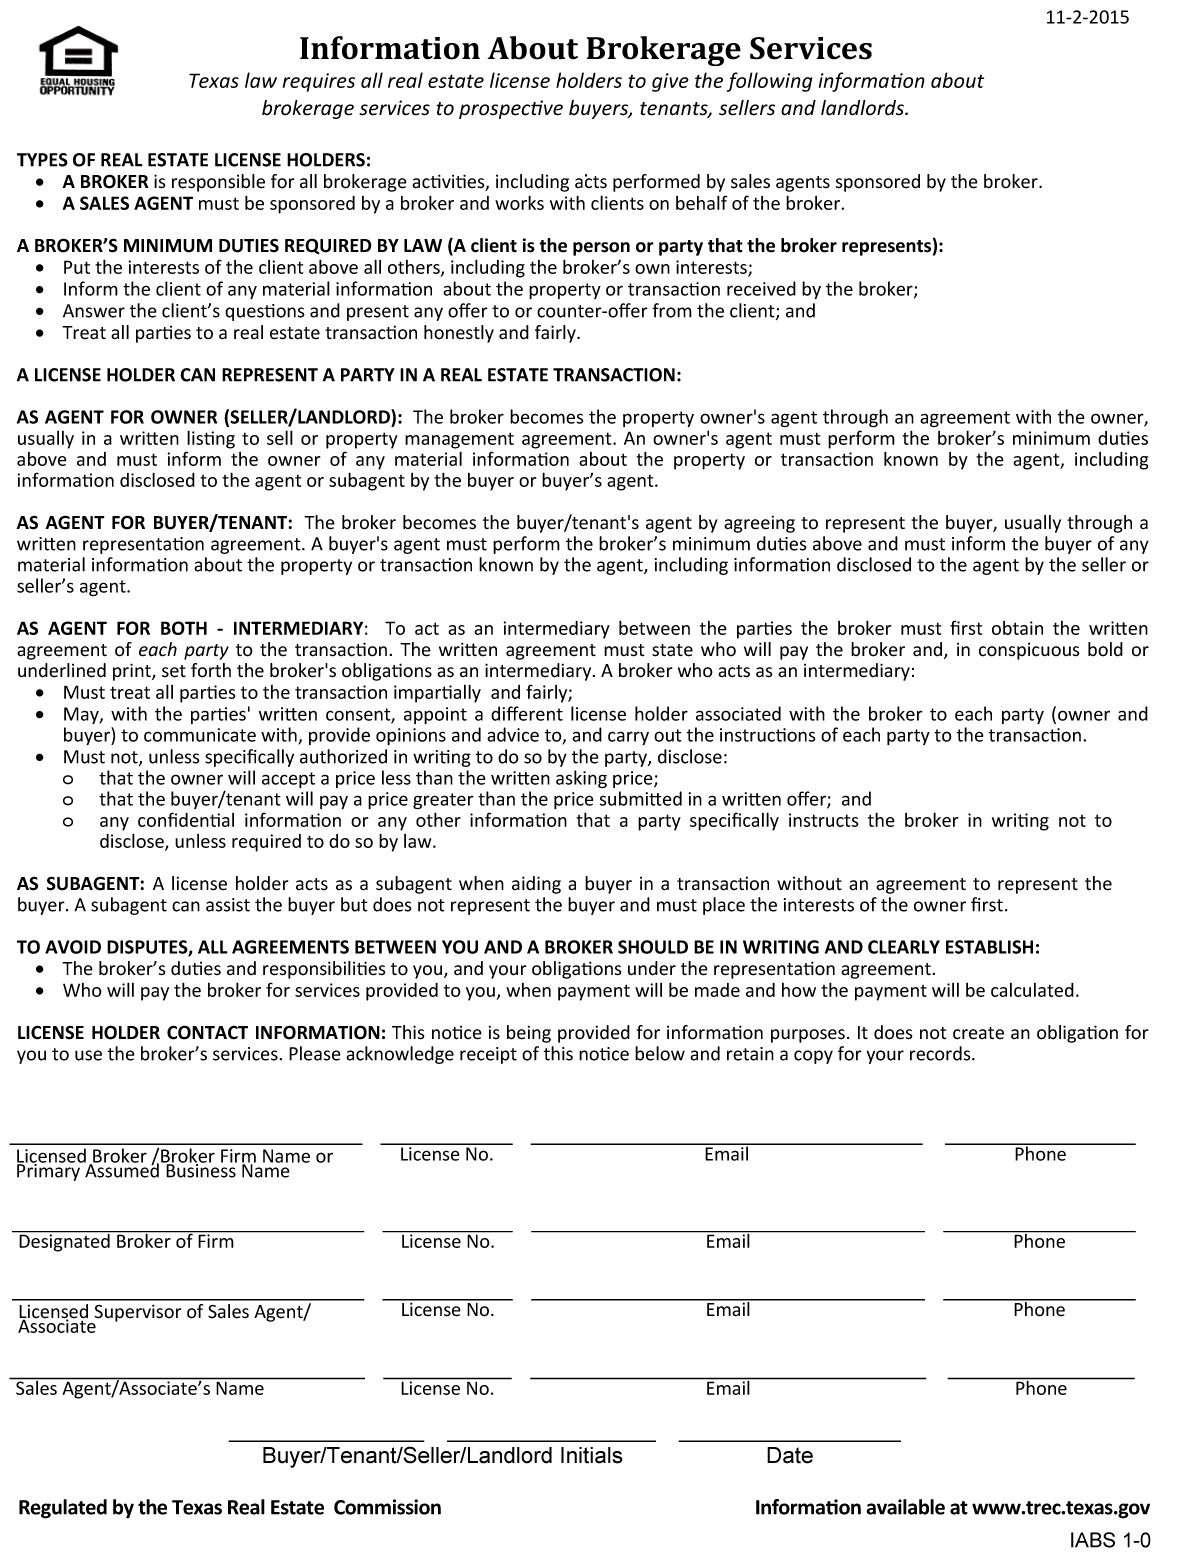 Texas Real Estate Commission Information About Brokerage Services